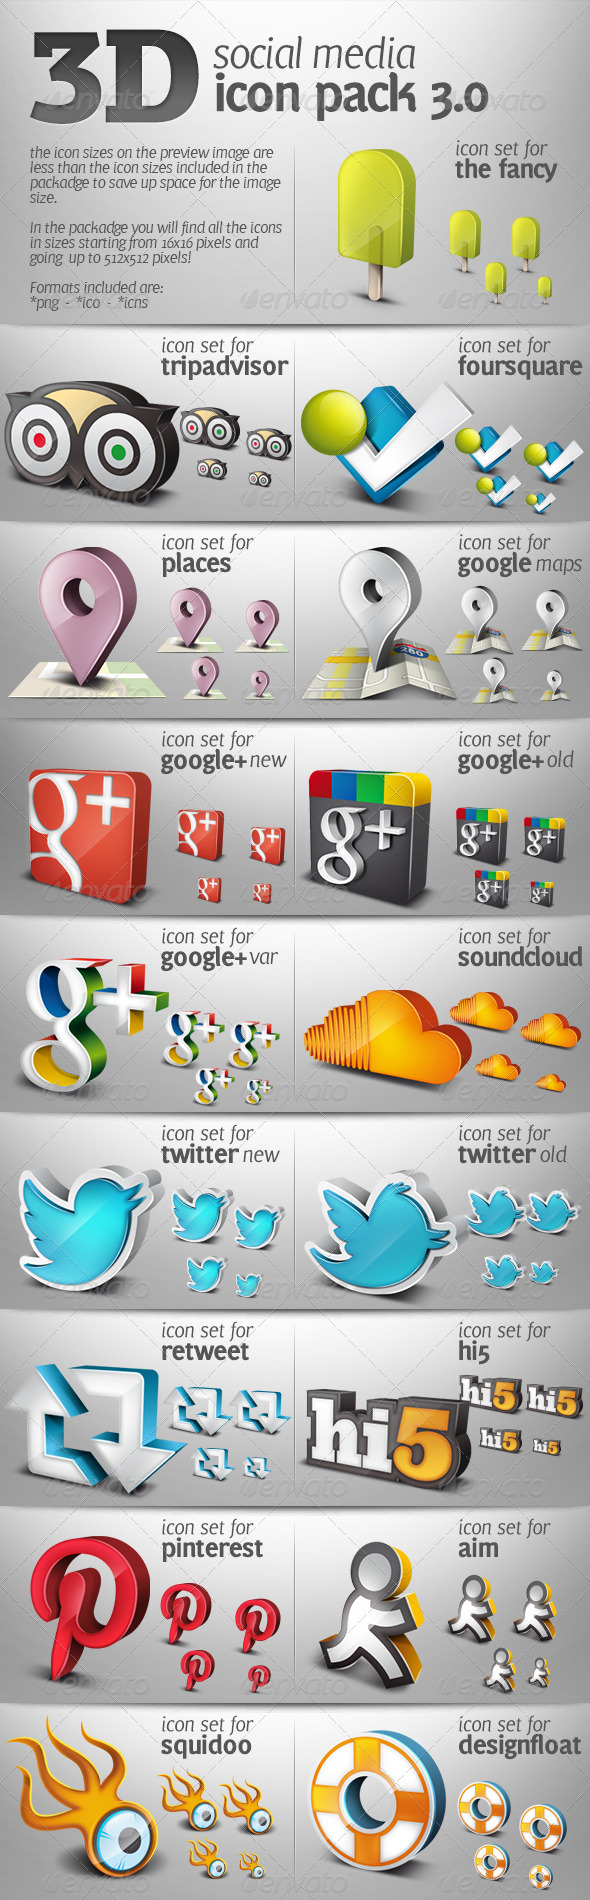 3D Social Media Icons Pack 03 - Icons